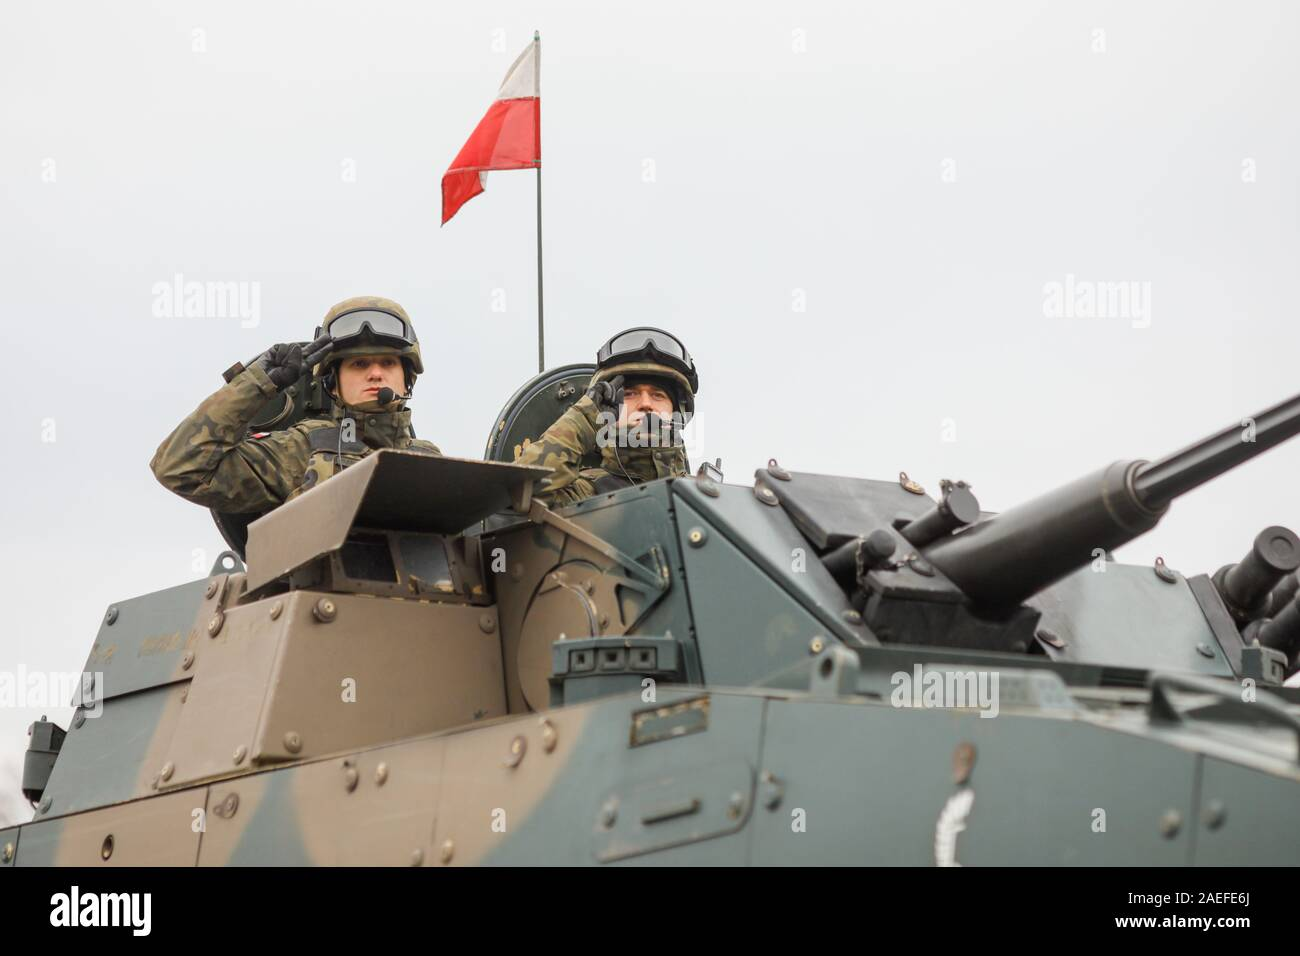 BUCHAREST, ROMANIA - December 1, 2019: Polish soldiers in a ROSOMAK armored vehicle at the Romanian National Day military parade. Stock Photo